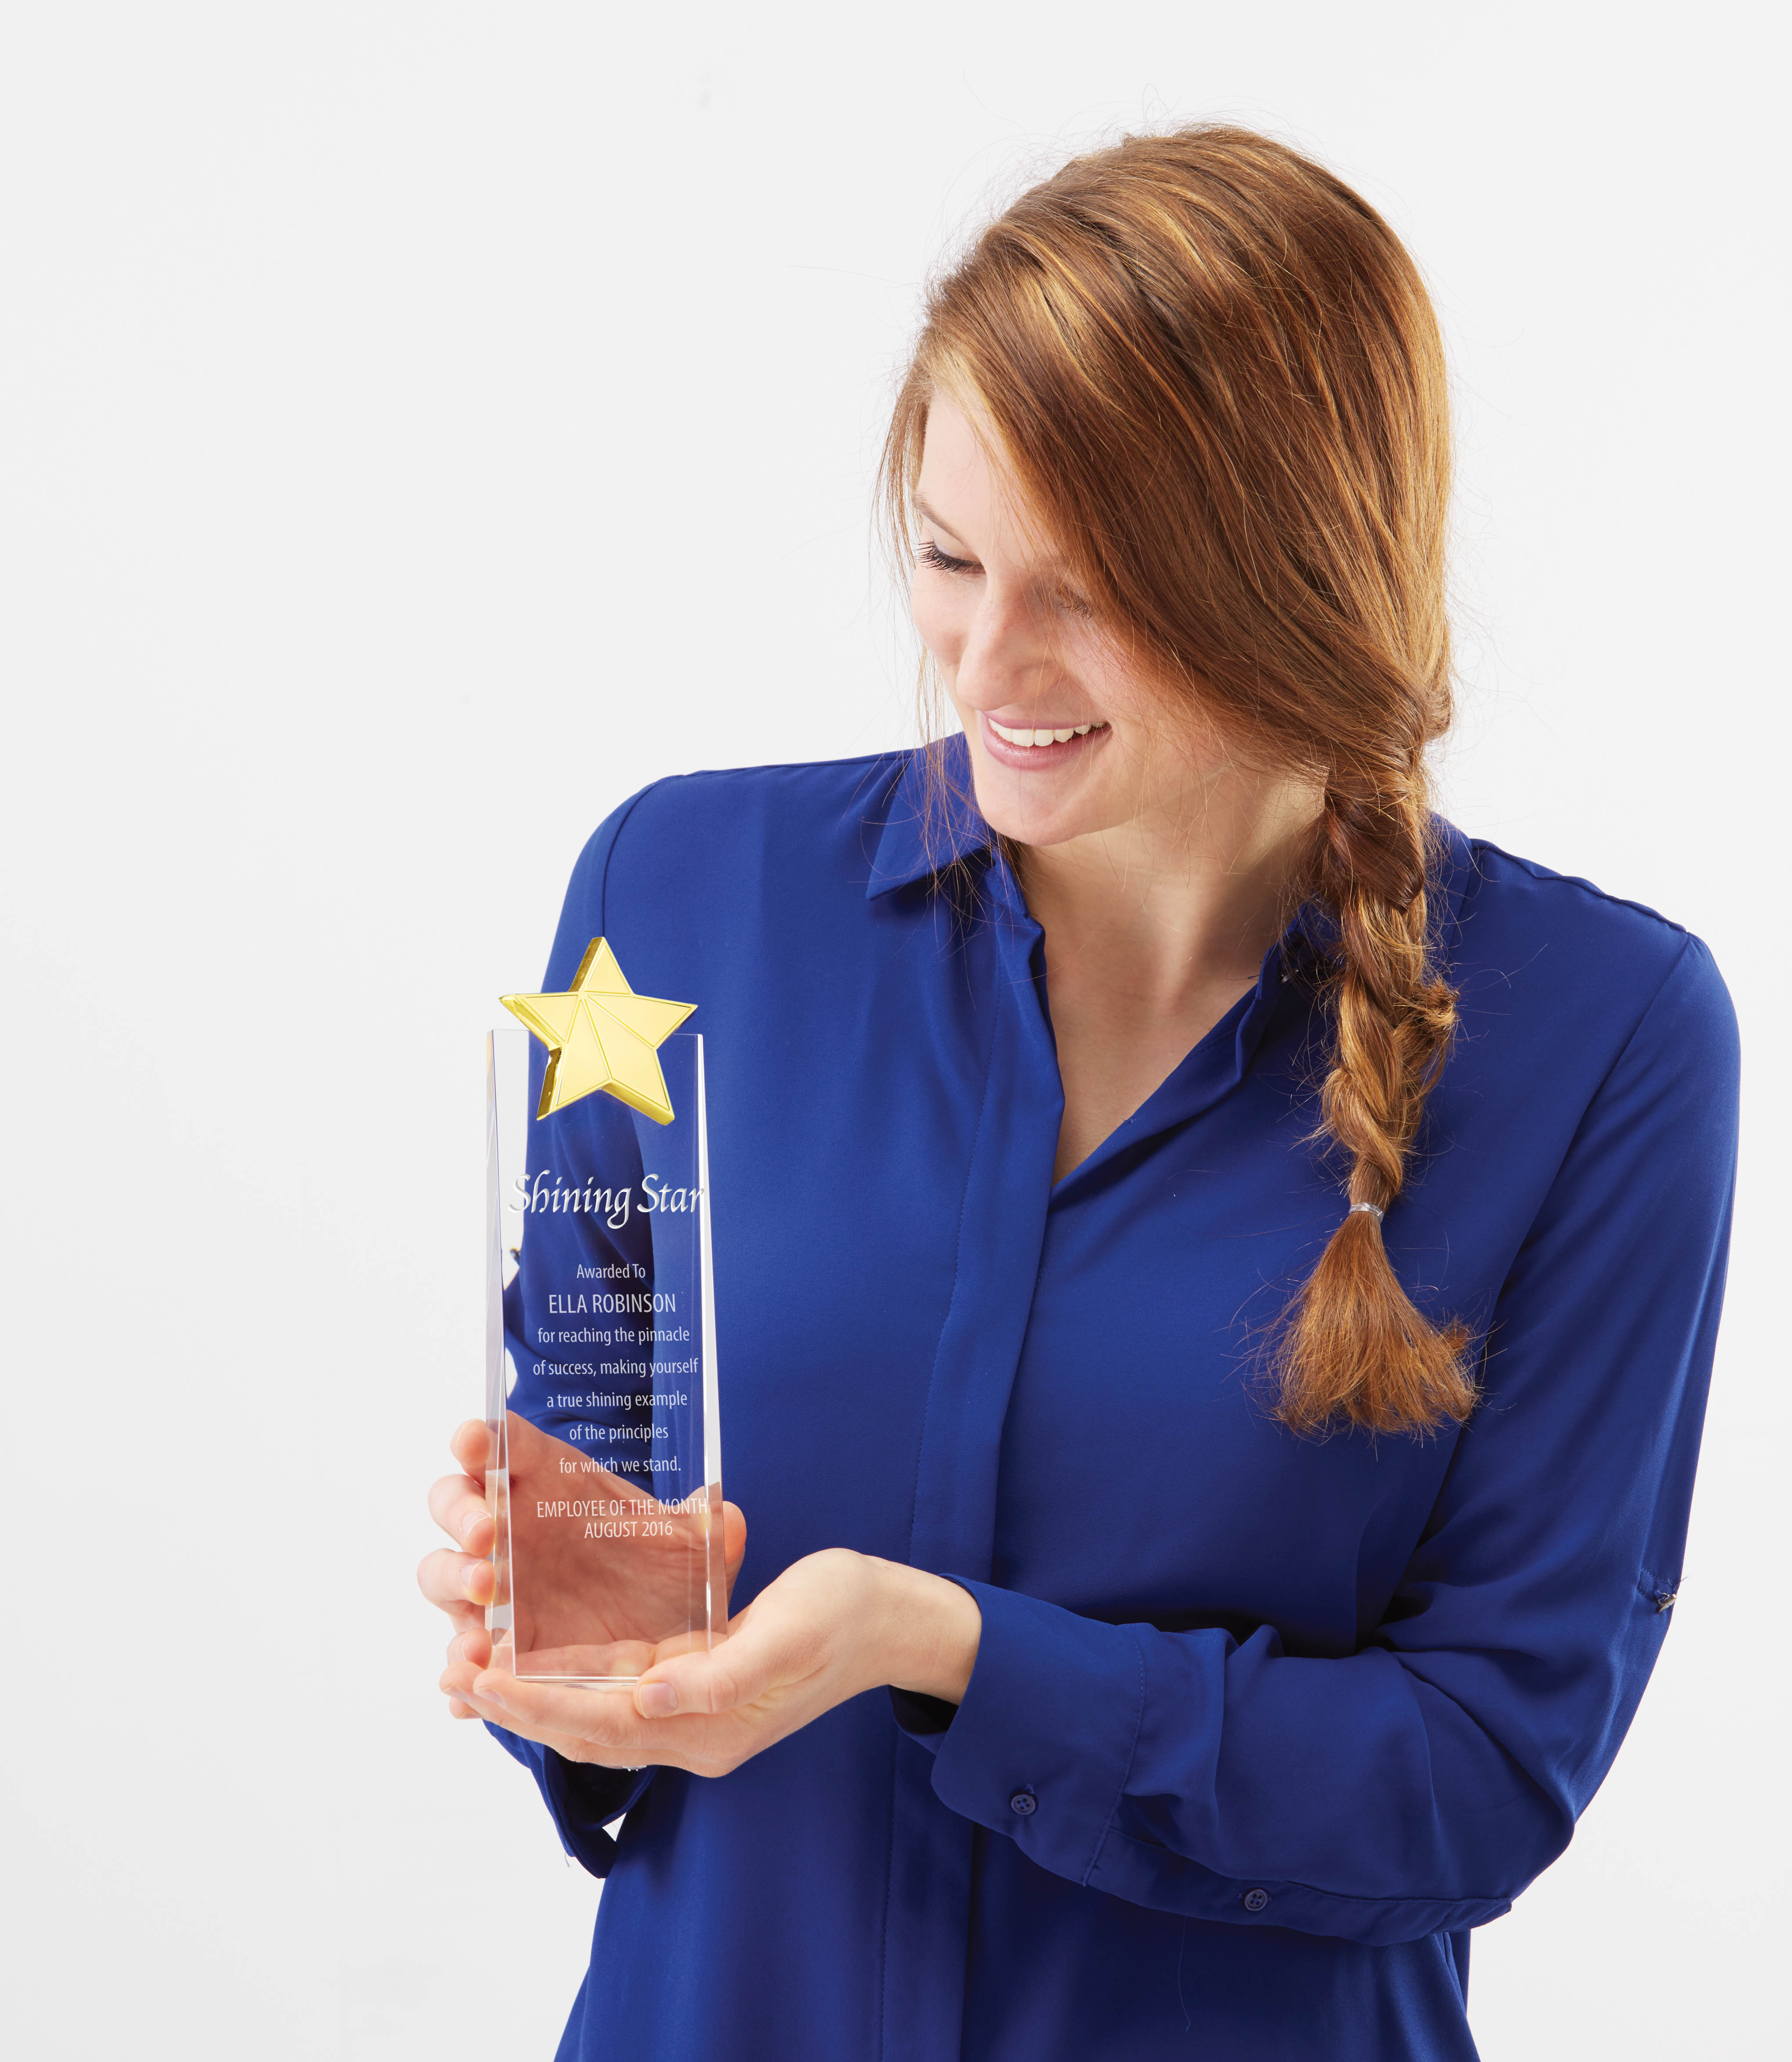 Young Woman in Blue Shirt Receiving Crystal Trophy with Gold Star